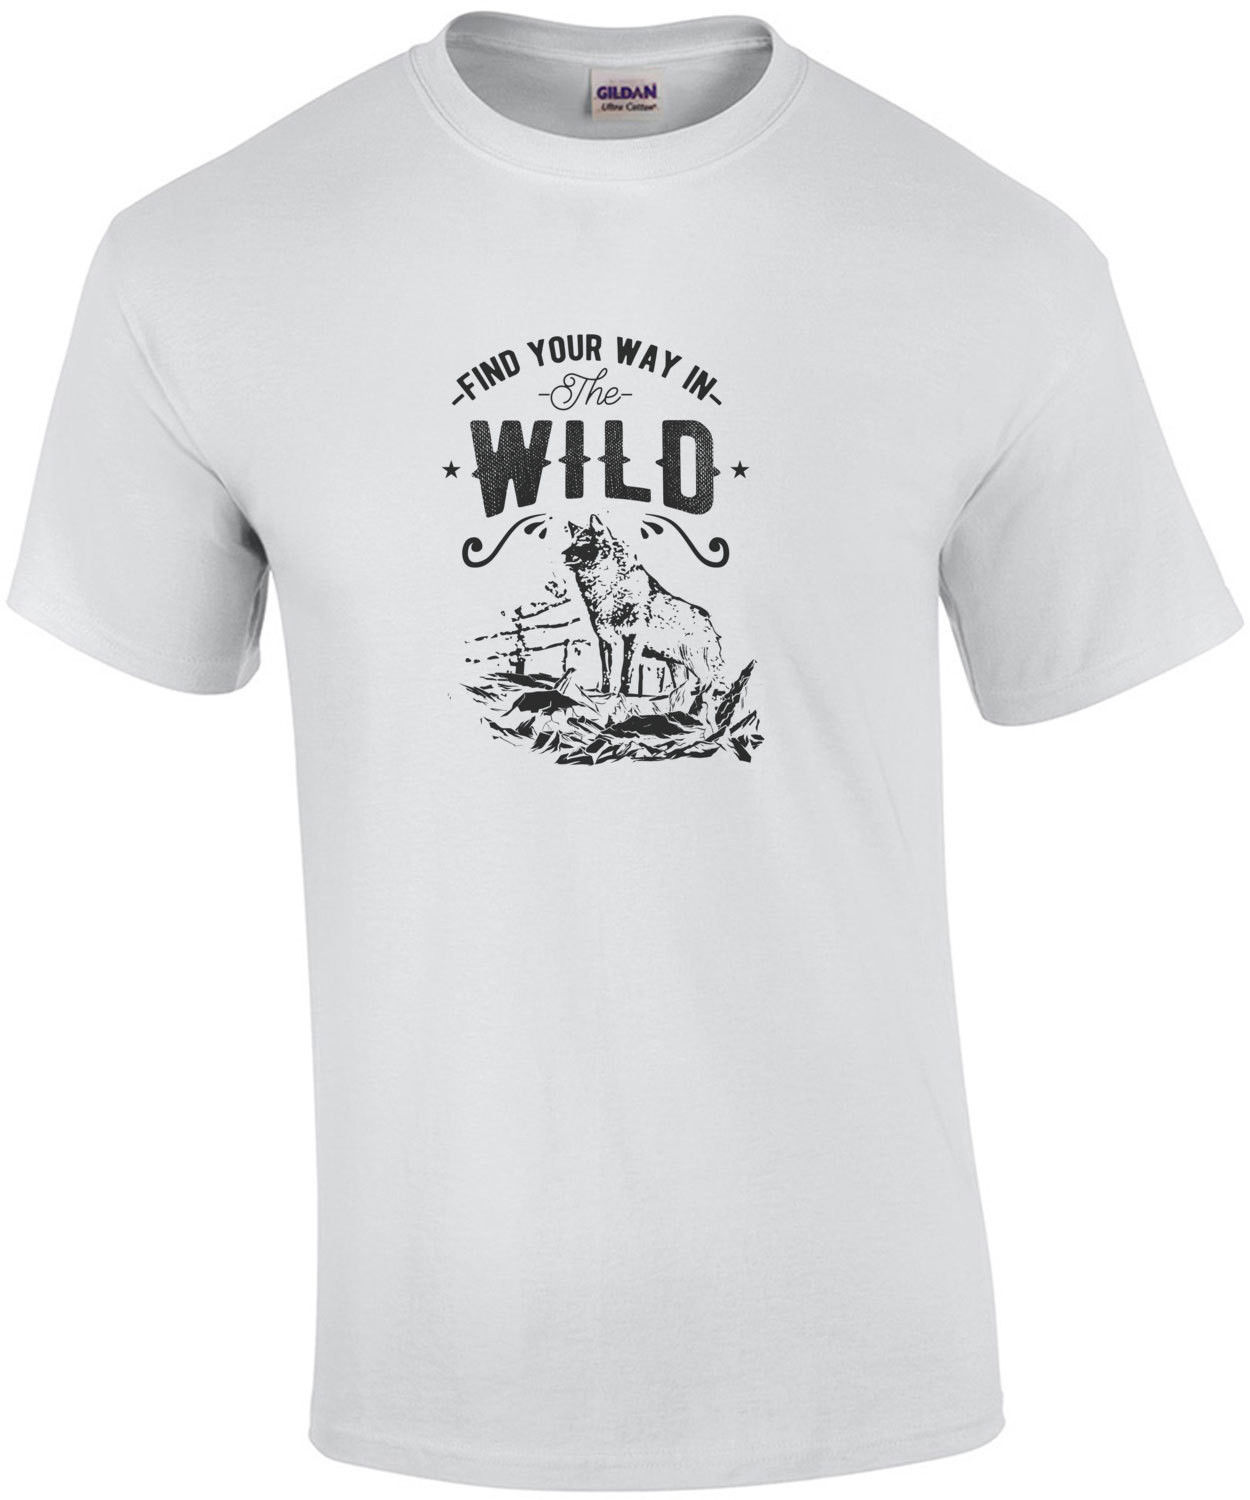 Find Your Way In The Wild Outdoorsy T-Shirt